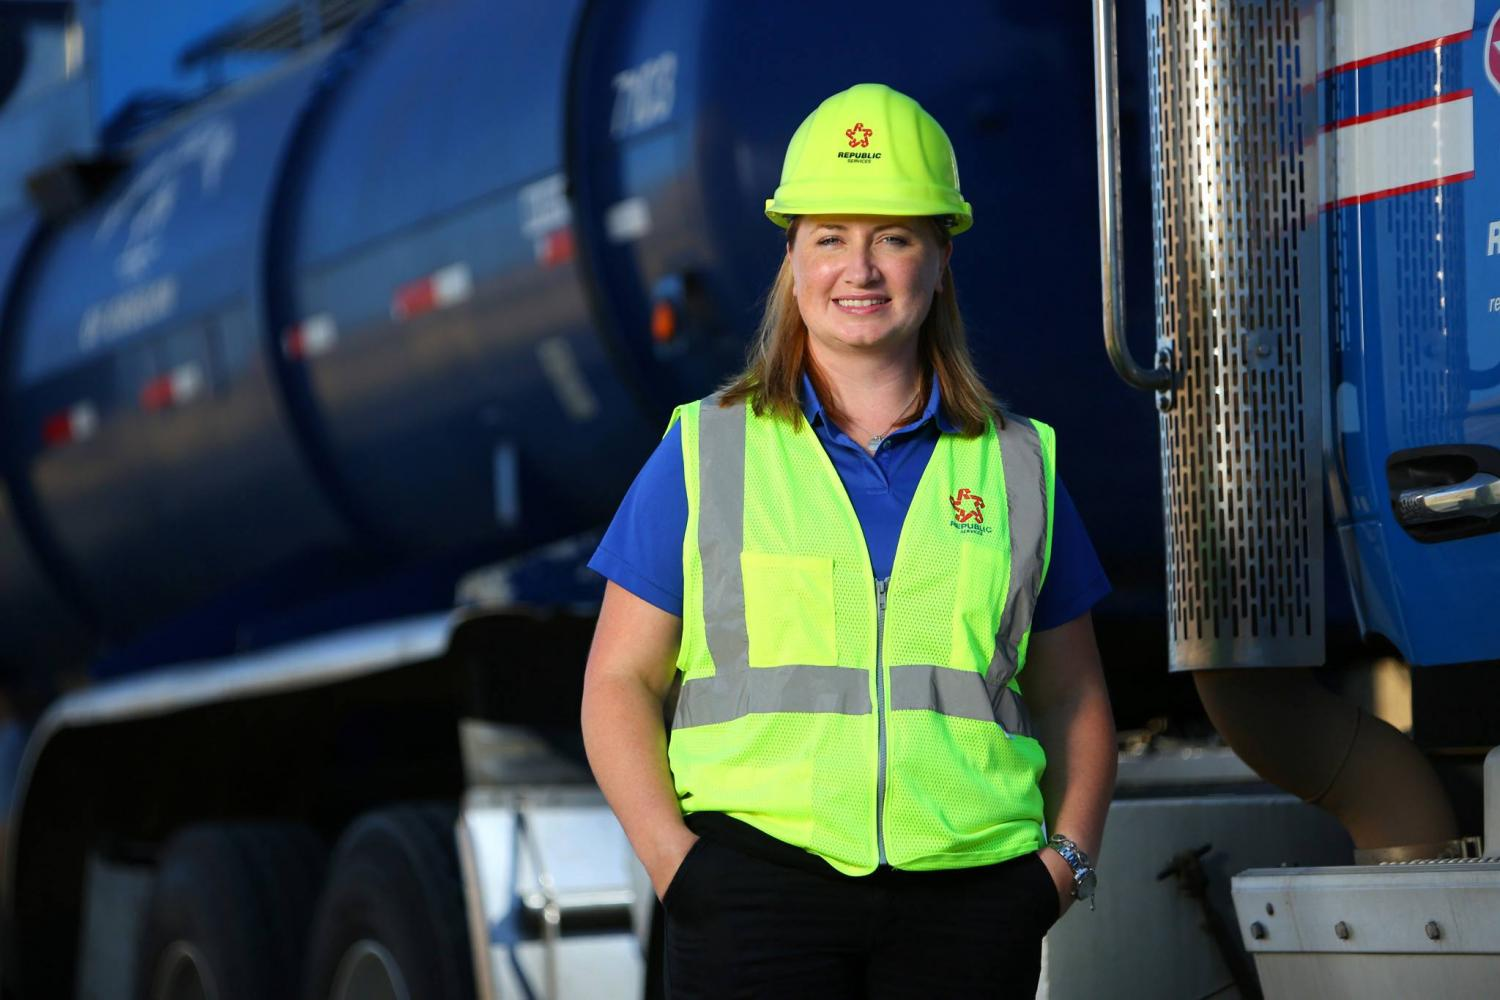 When it comes to hiring women in non-traditional fields, the global recycling and hazardous waste company Republic Services has made its mark.